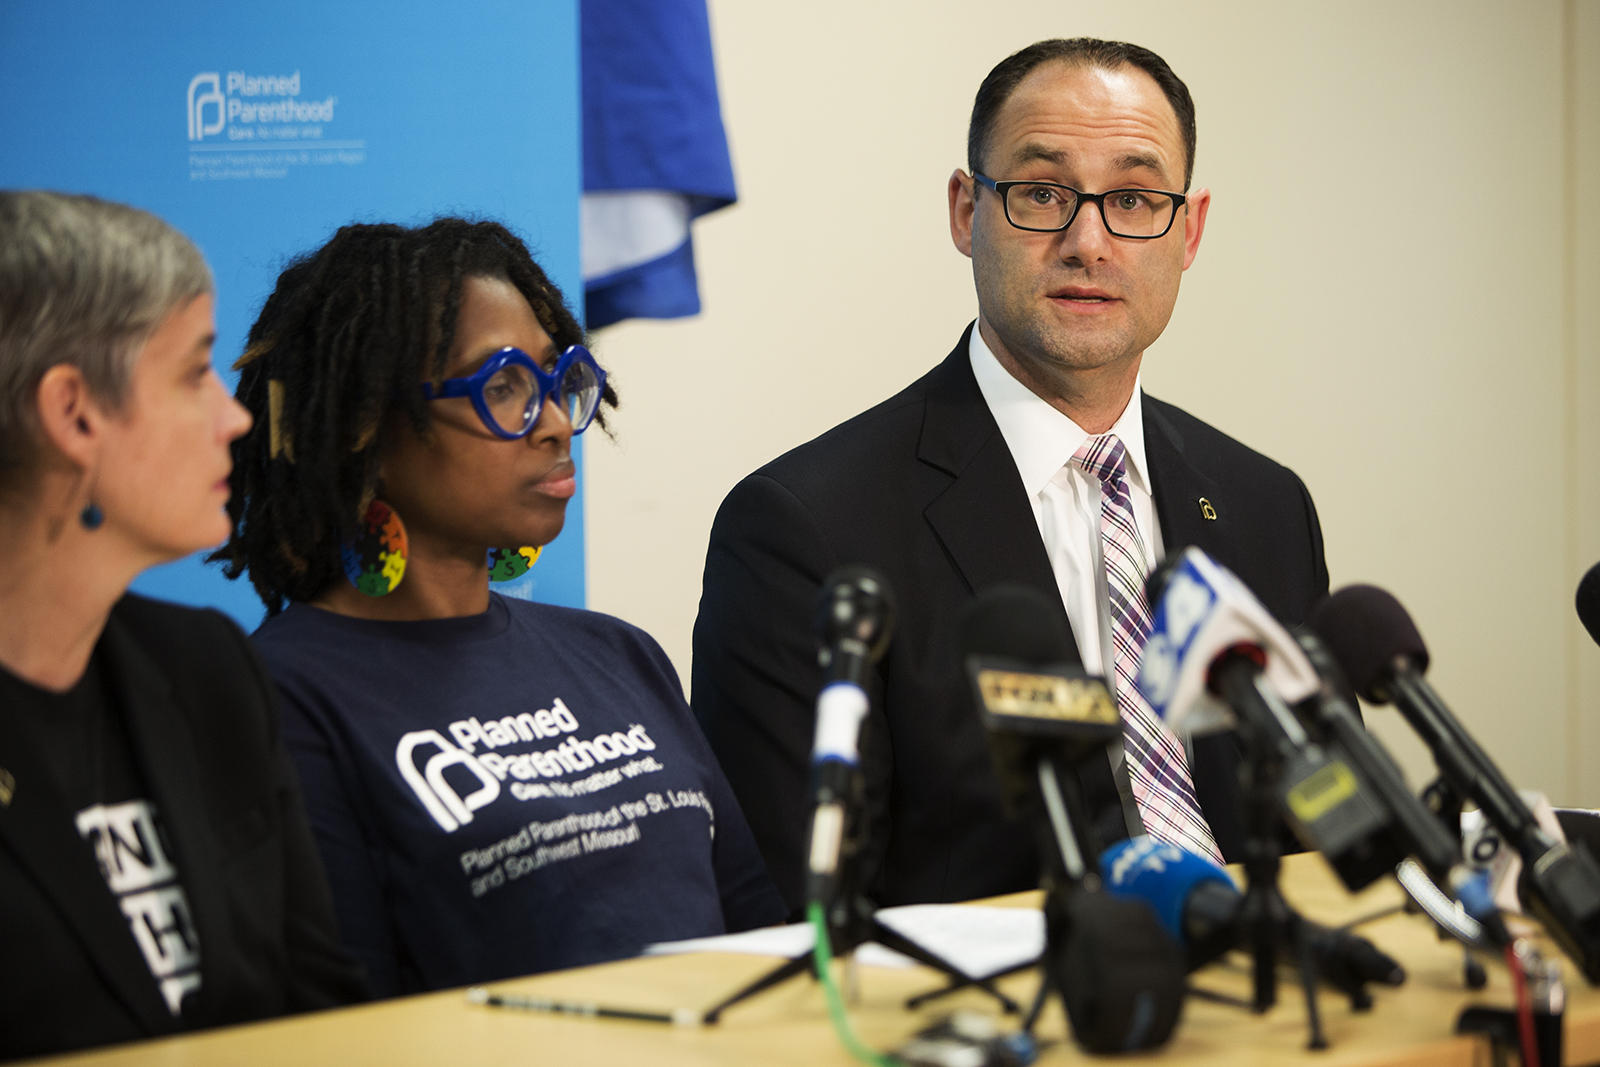 Missouri Planned Parenthood Case Could Have Chilling Effect